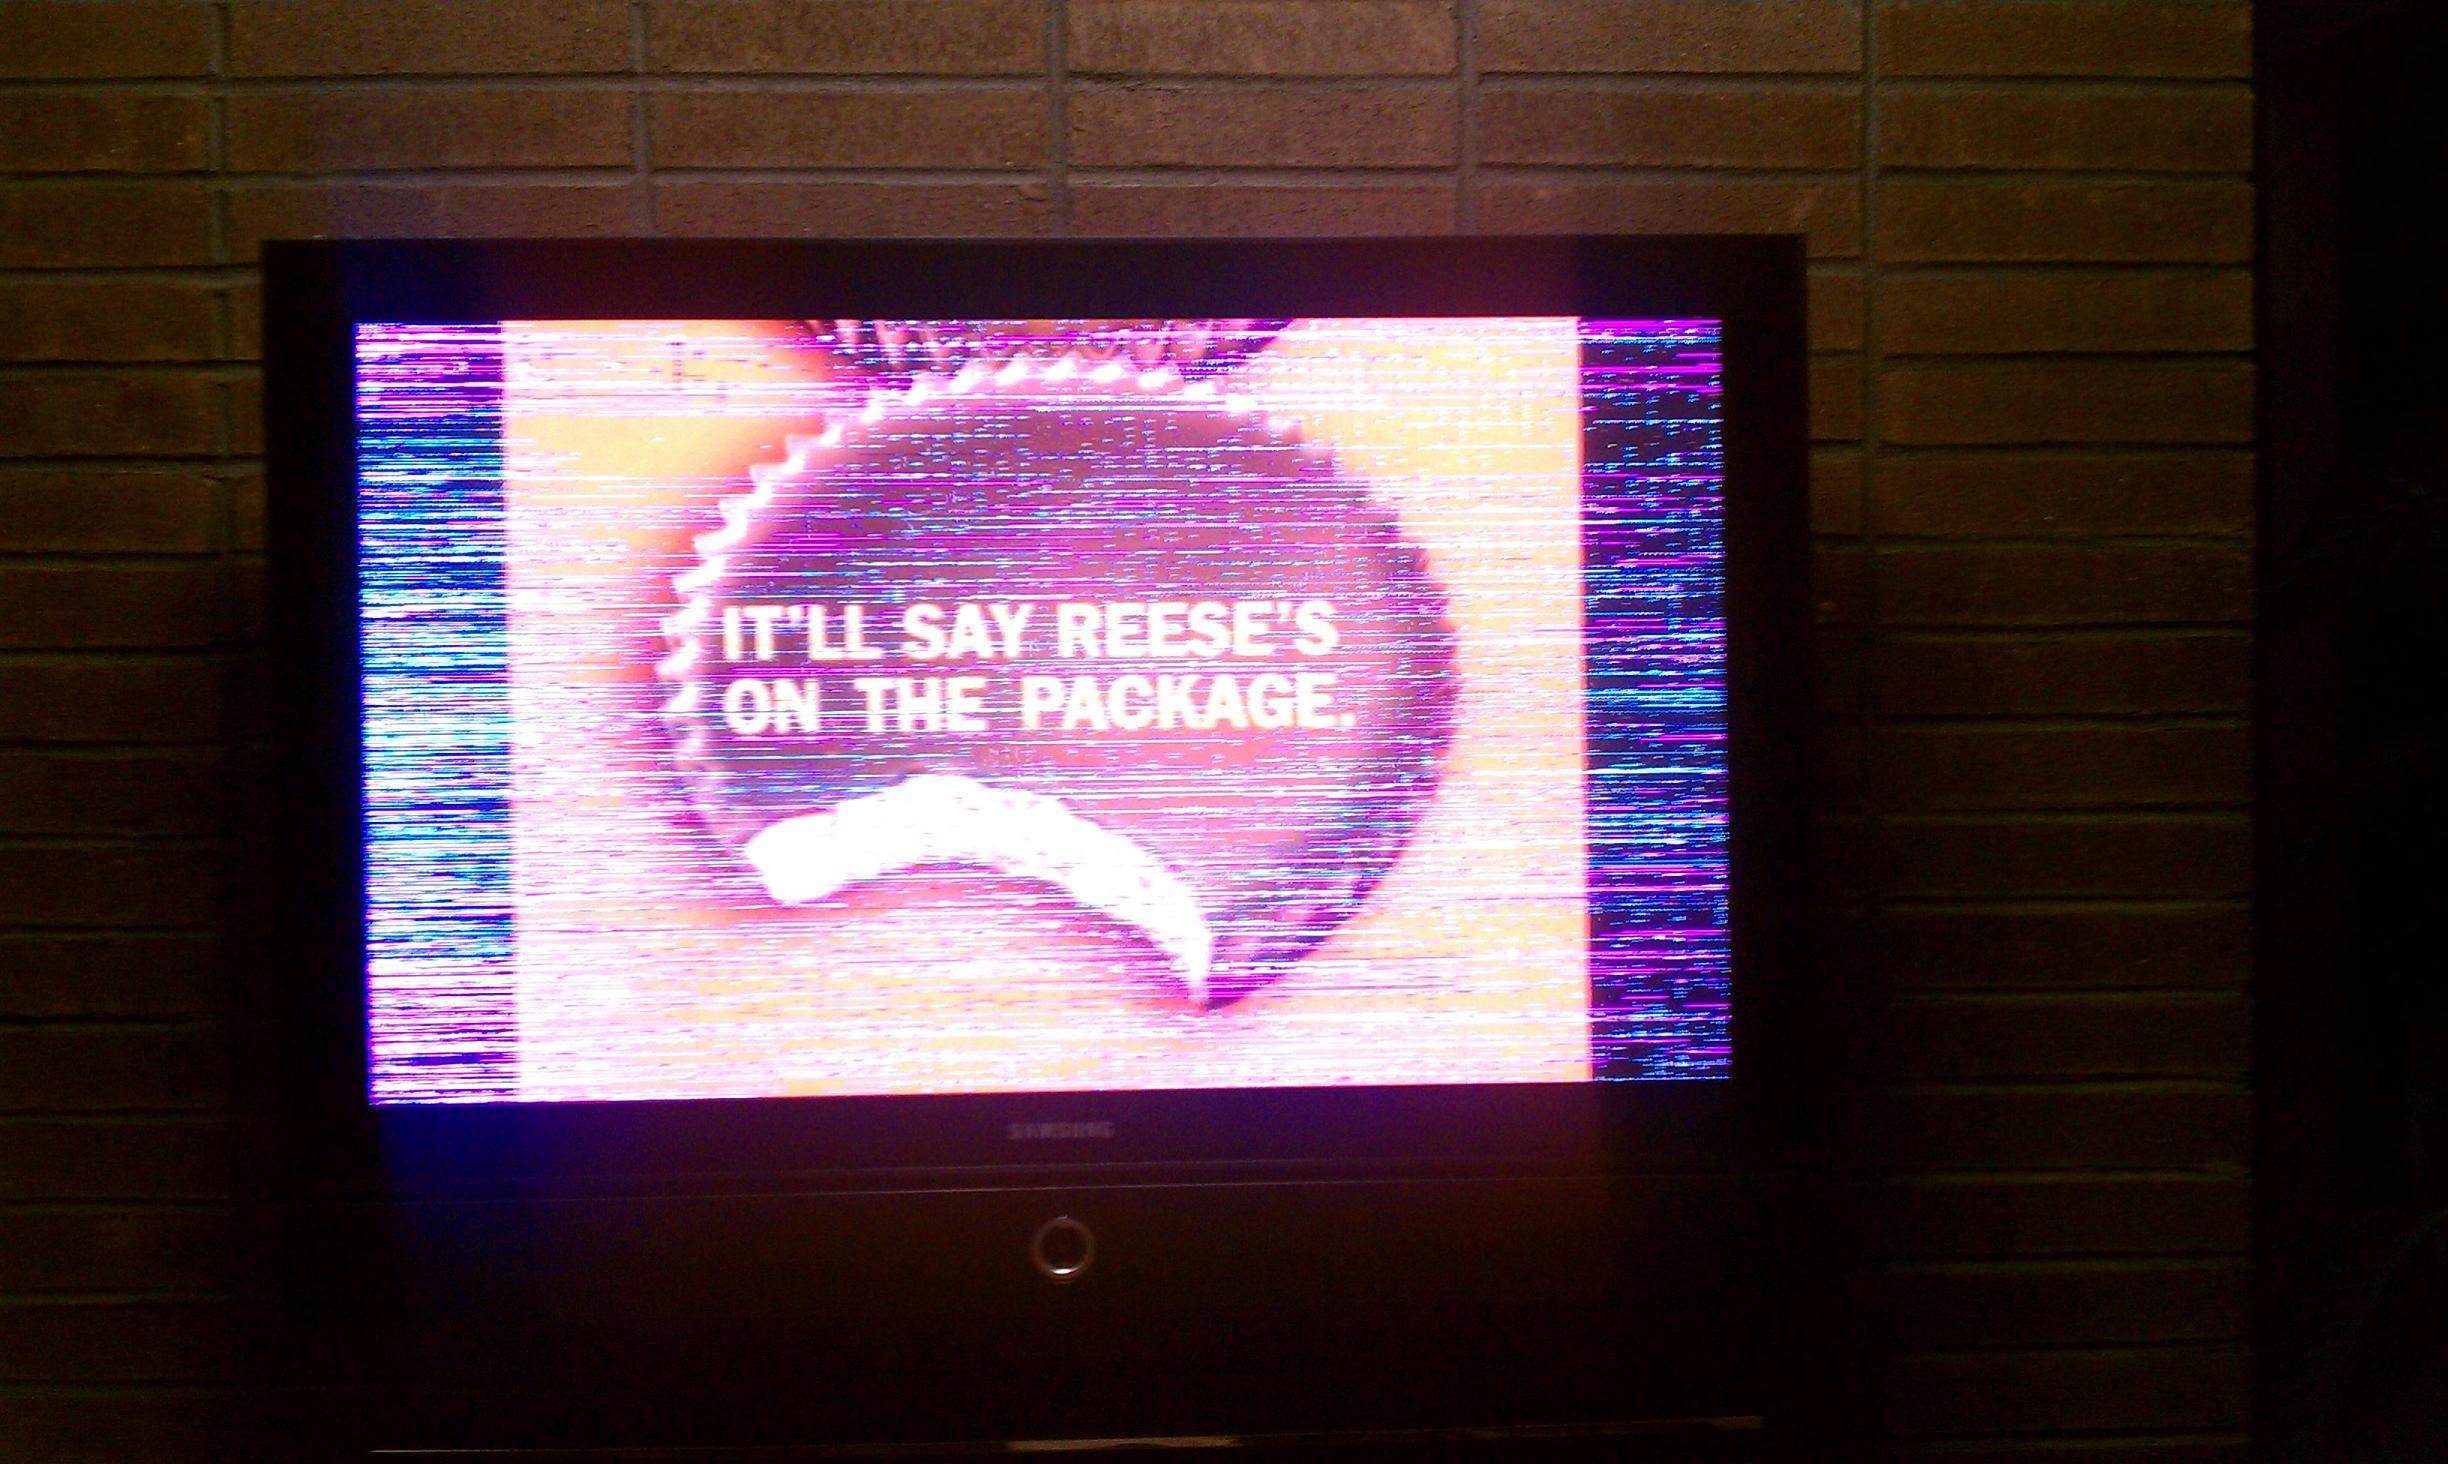 I Have A Samsung Plasma Tv Hpr4272x Xaa The Screen Has Colored Pixeled Lines Going Up And Down And Left To Right This